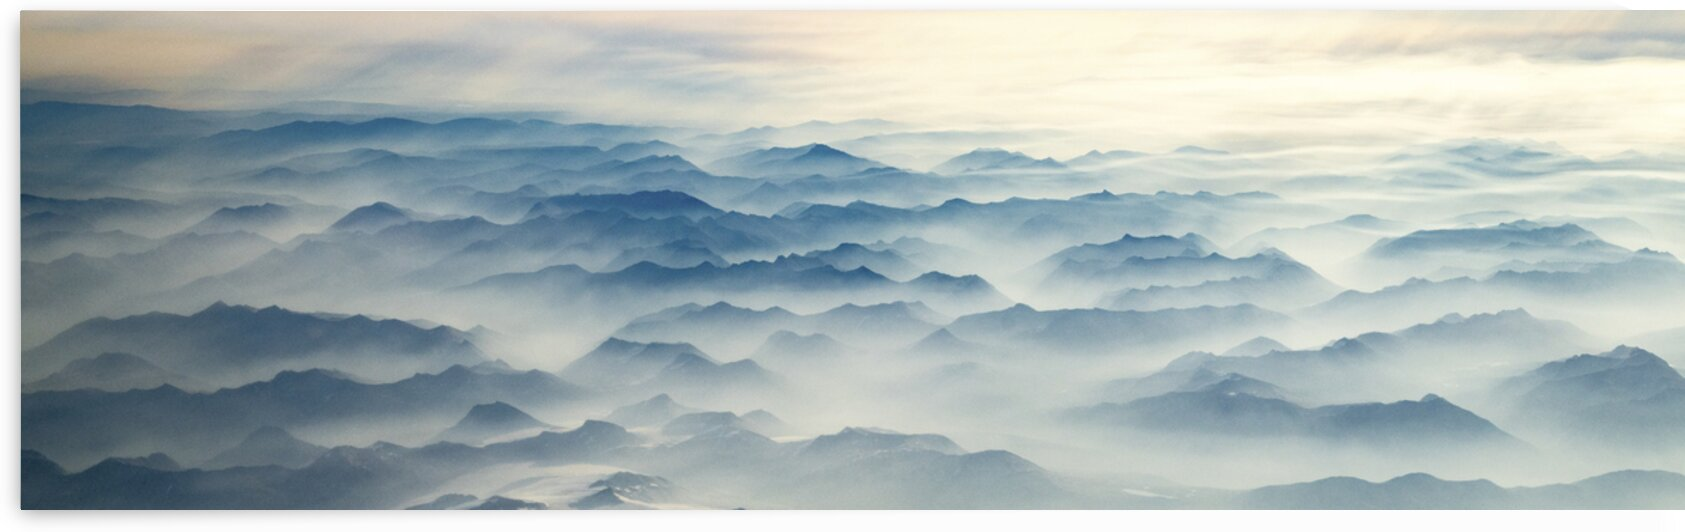 Sea of Mountains  by Julie Anne Davies